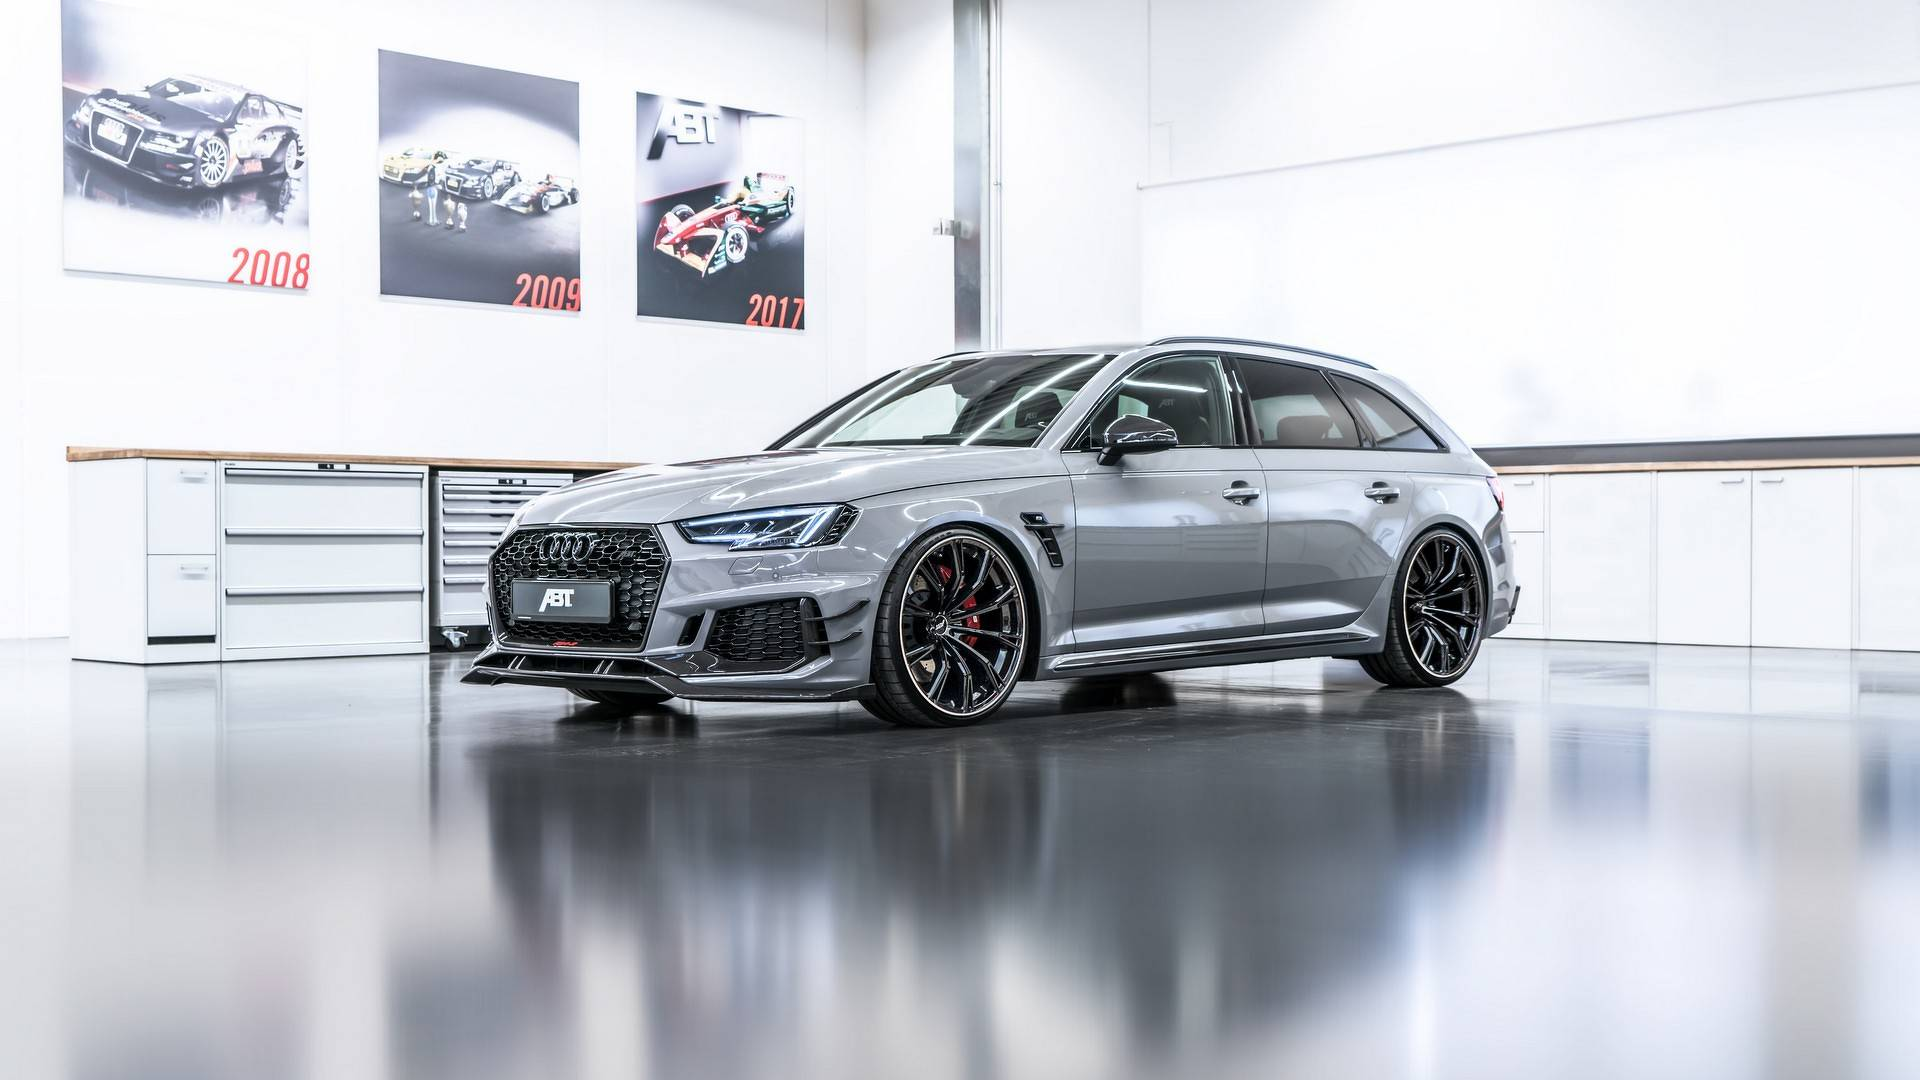 abt-rs4-r-based-on-the-audi-rs4-avant